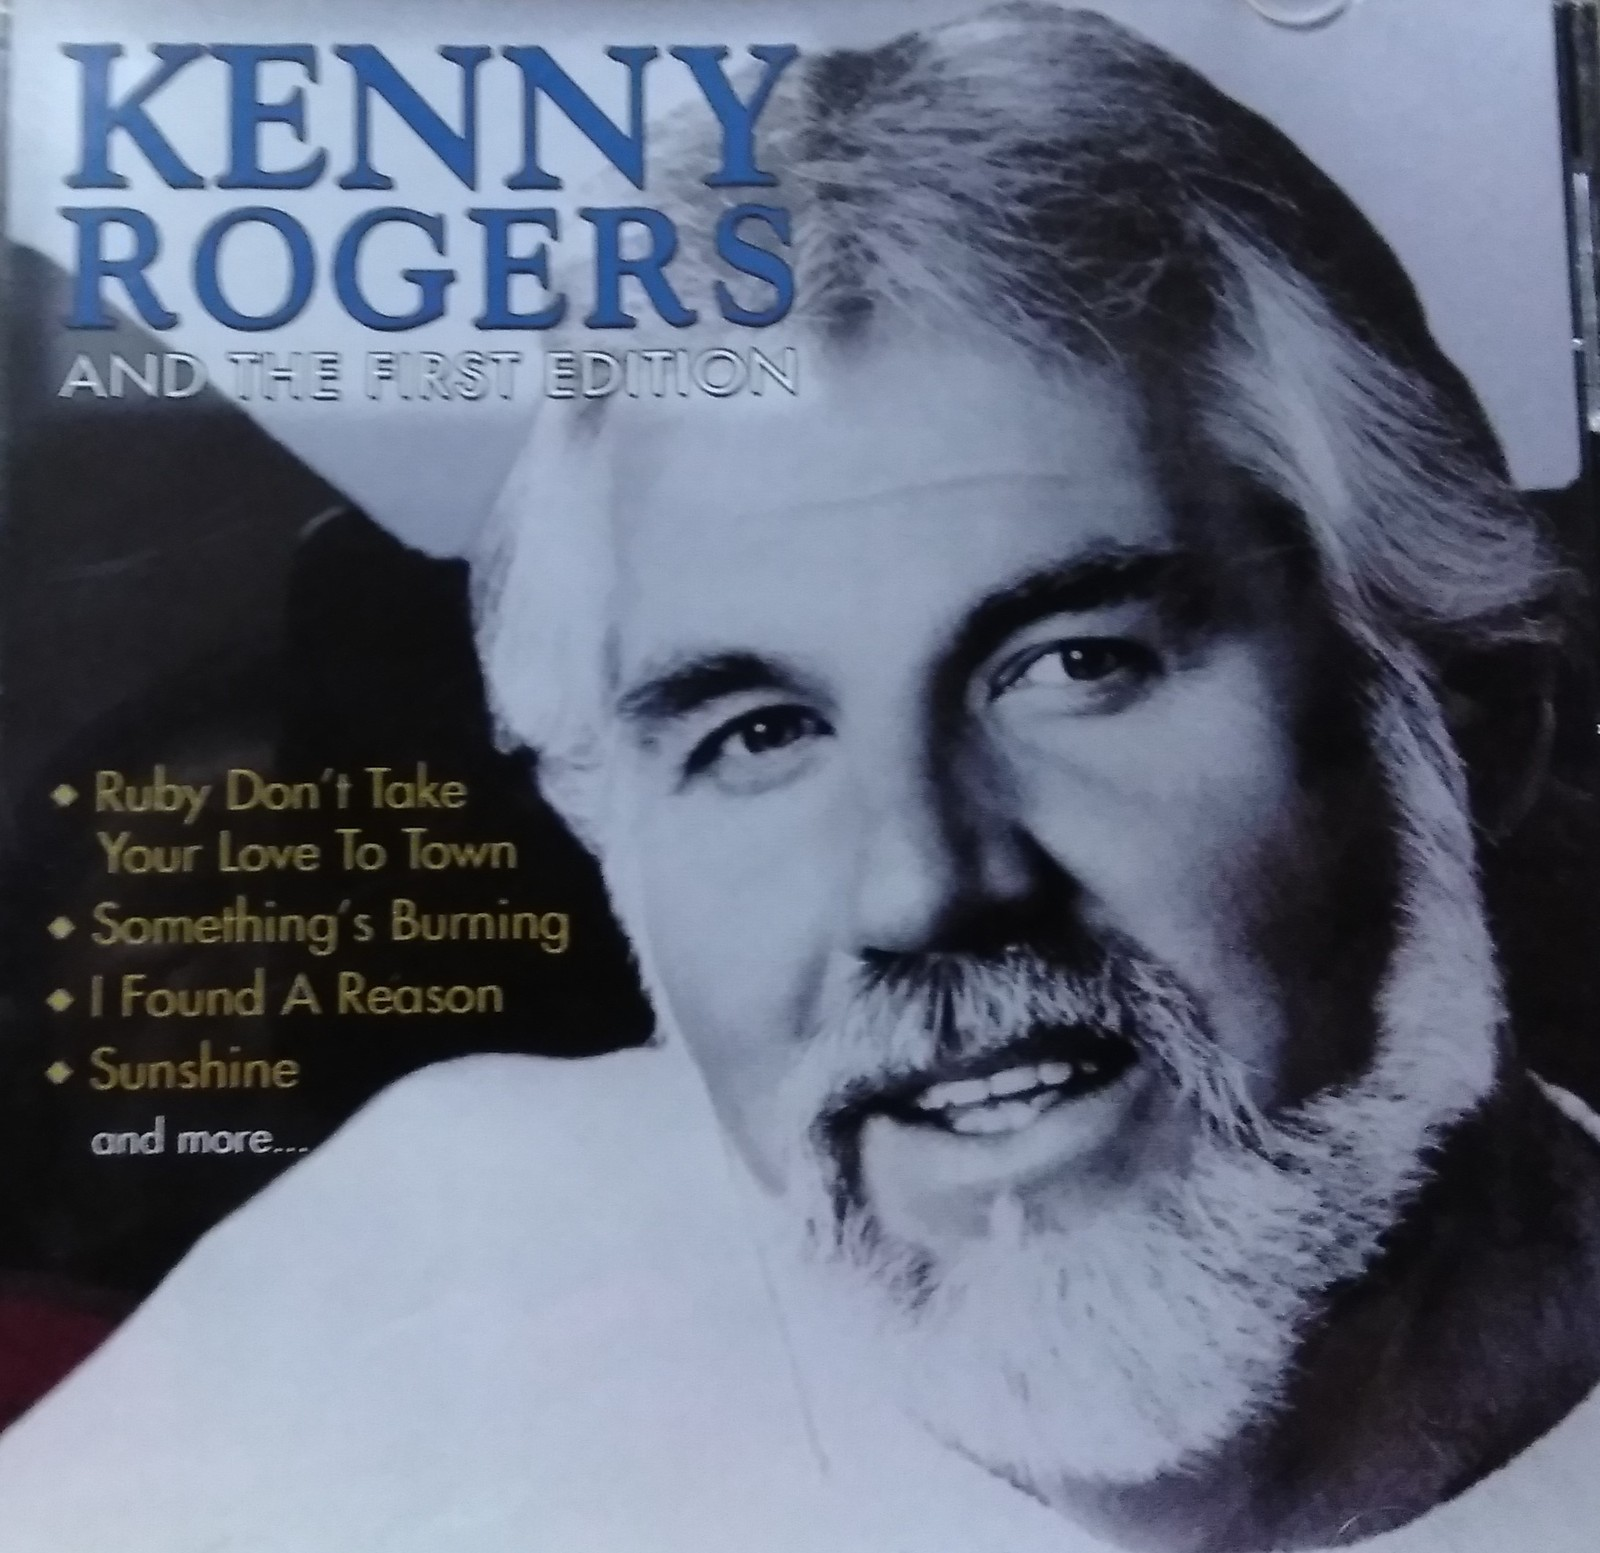 Primary image for Kenny Rogers and The First Editiion CD